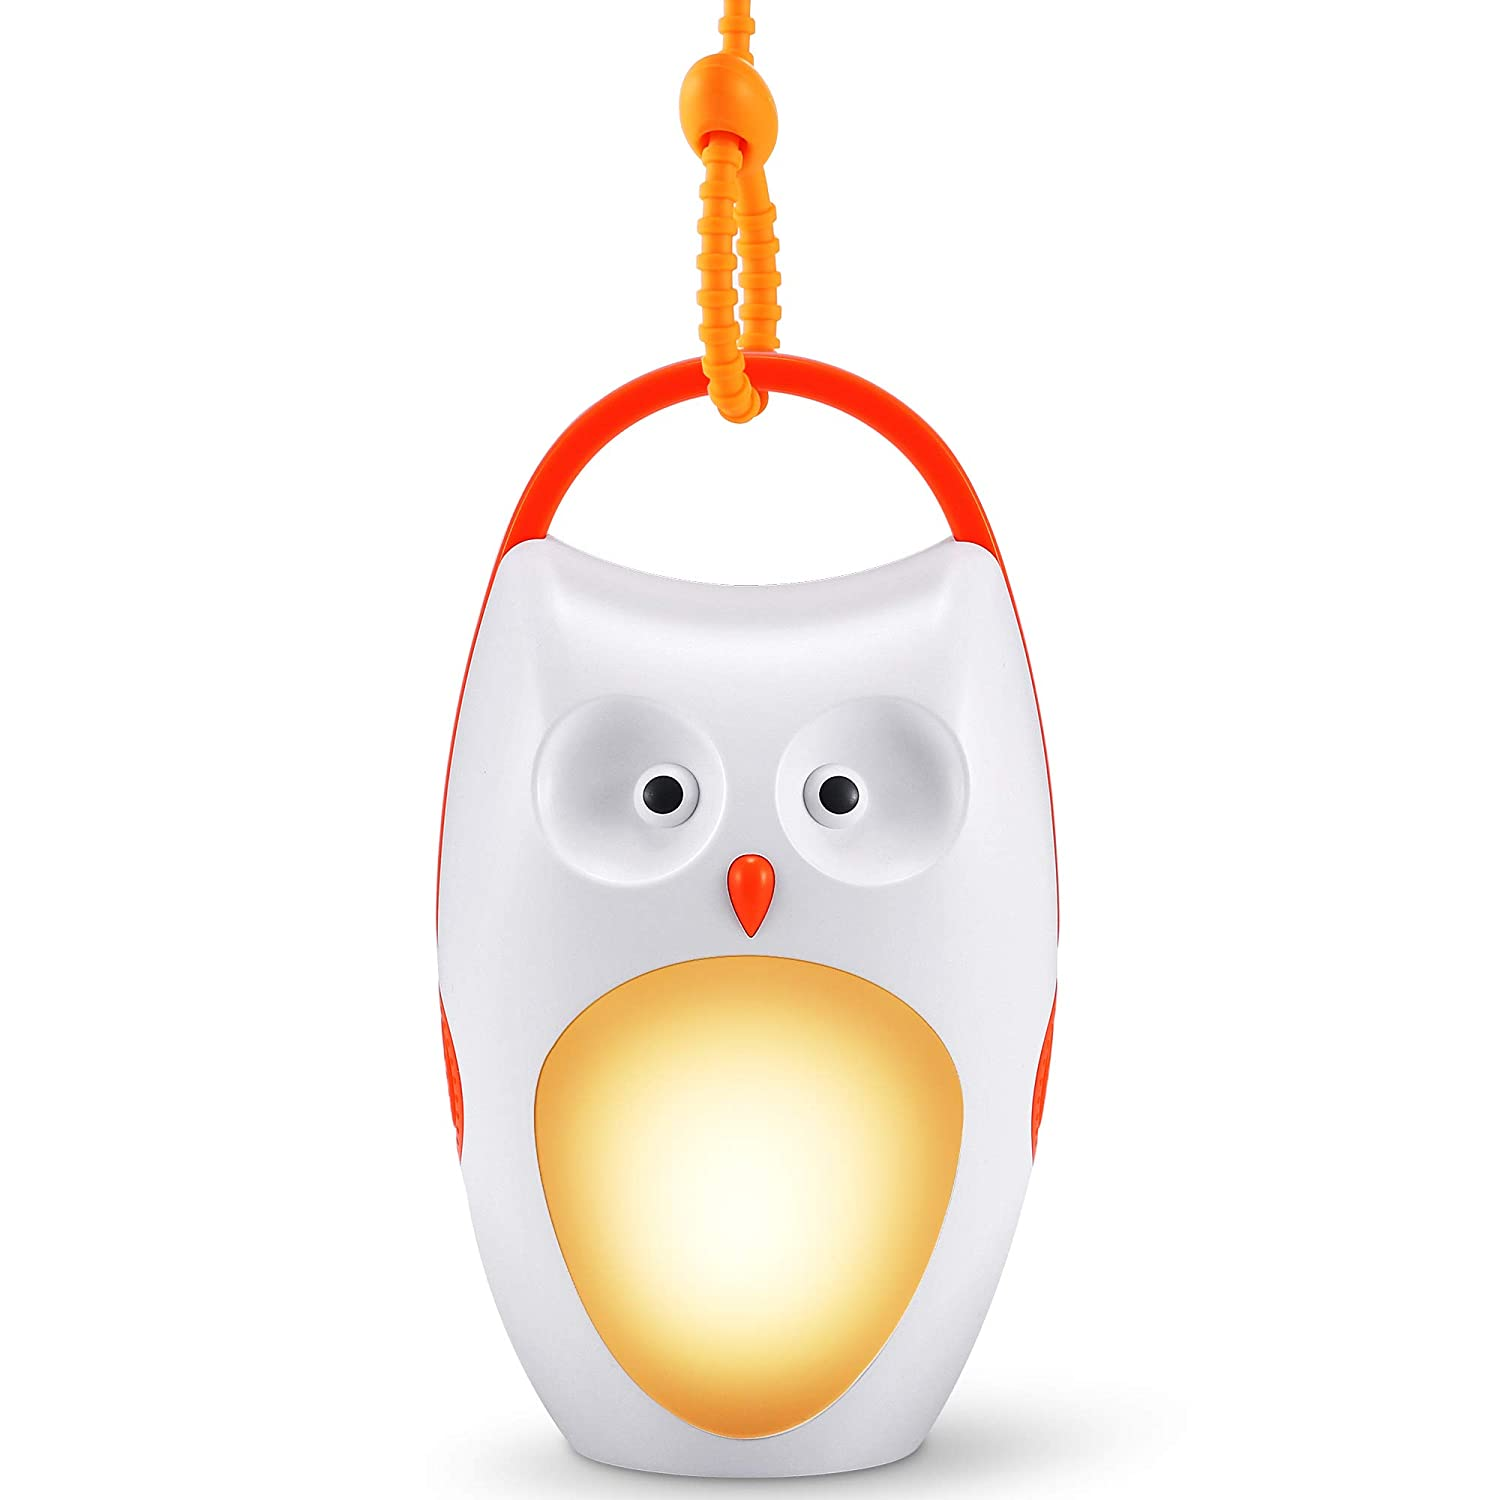 SOAIY Baby Sleep Soother Owl Portable White Noise Shusher Sound Machine with Sleep Aid Night Light,7 Soothing Sounds with Volume Control,Auto-Timer for Traveing,Sleeping,Baby Carrige.